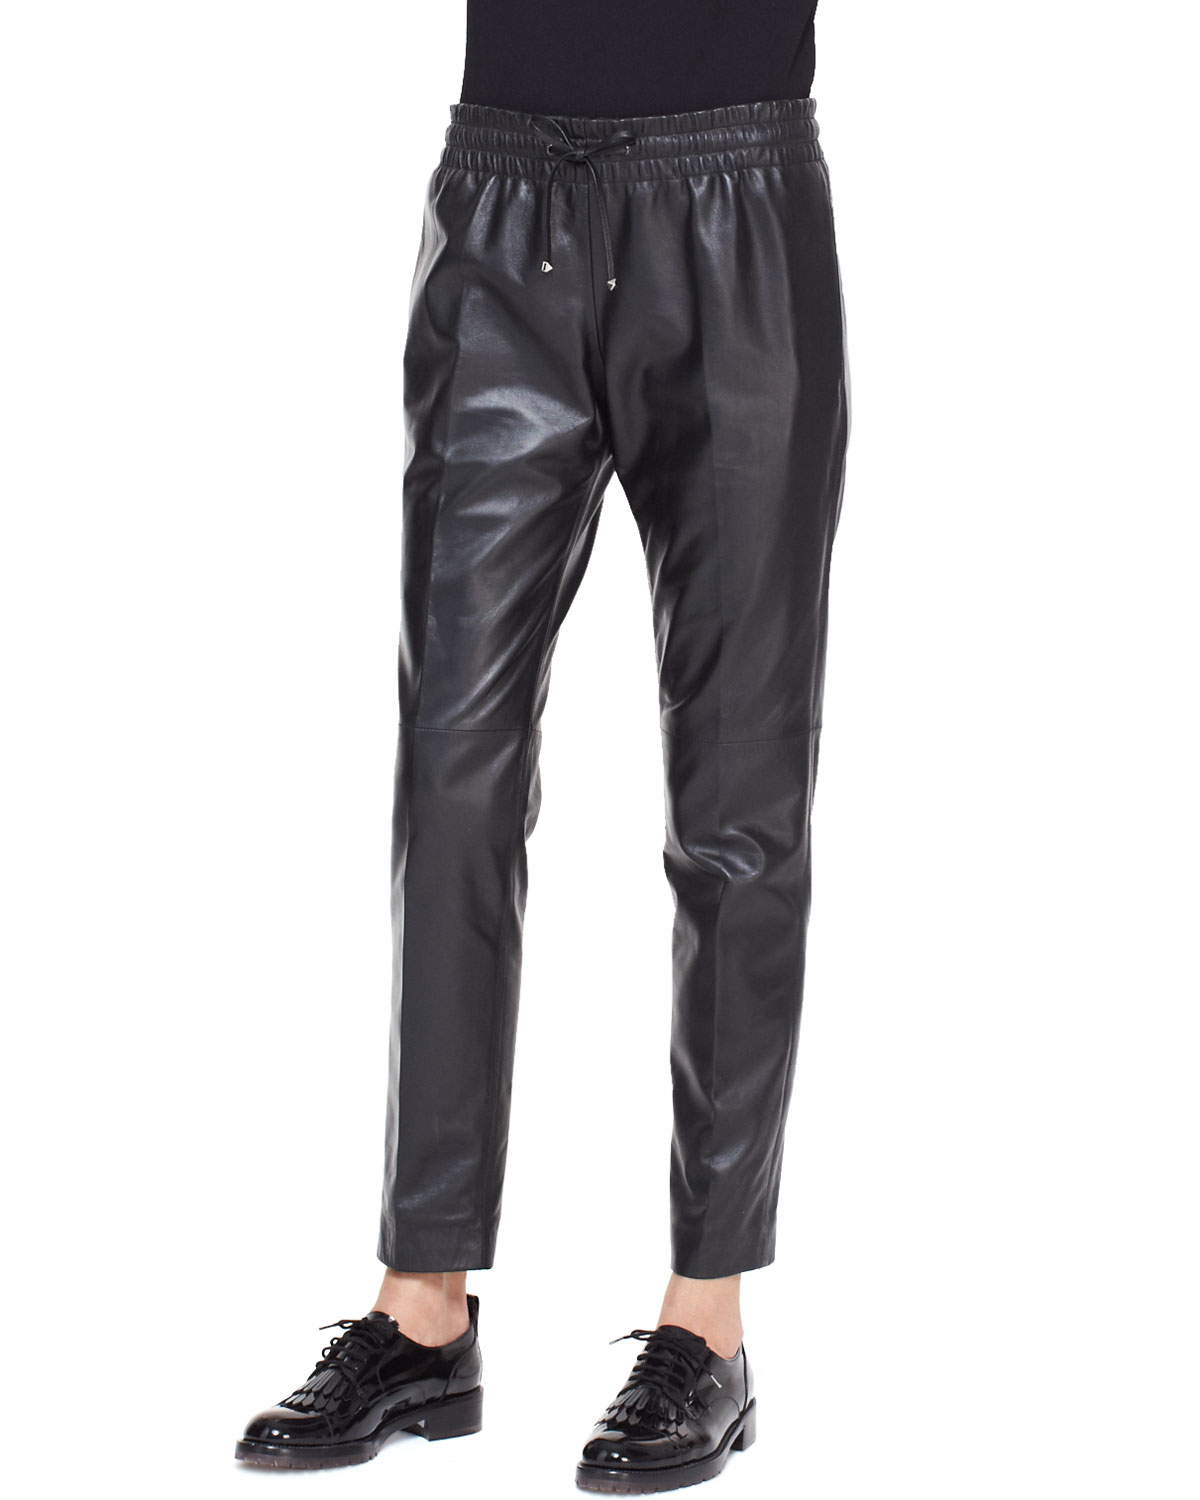 Leather Track Pants with Drawstring, Black